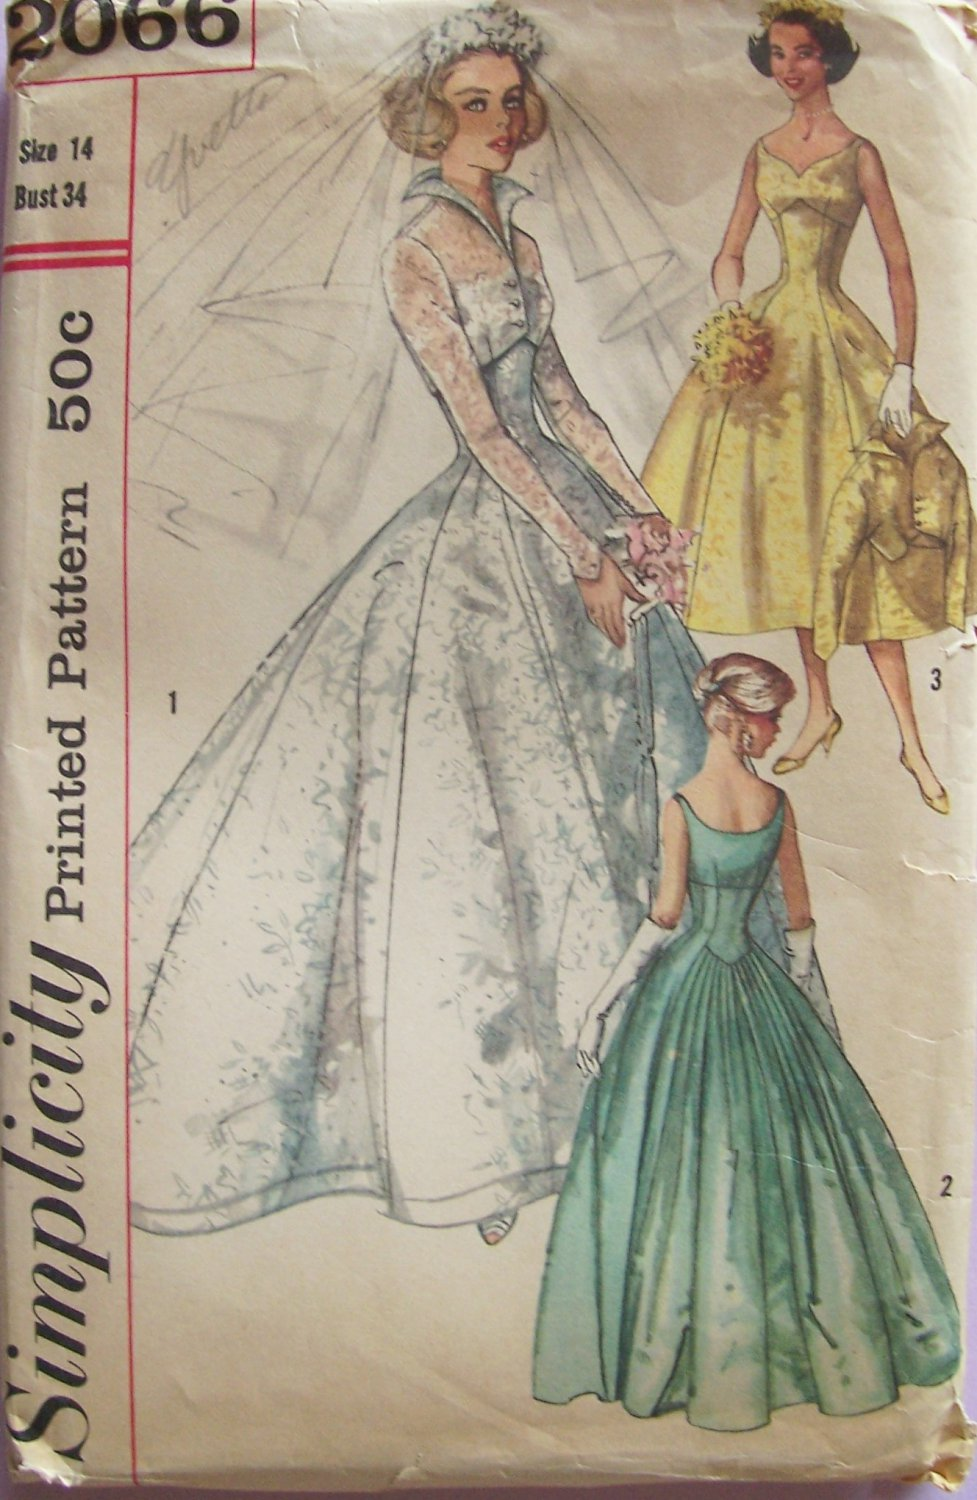 vintage 50s wedding dress patterns vintage wedding dress patterns Vintage 50s Simplicity Empire Sweetheart Neck Bridal Wedding